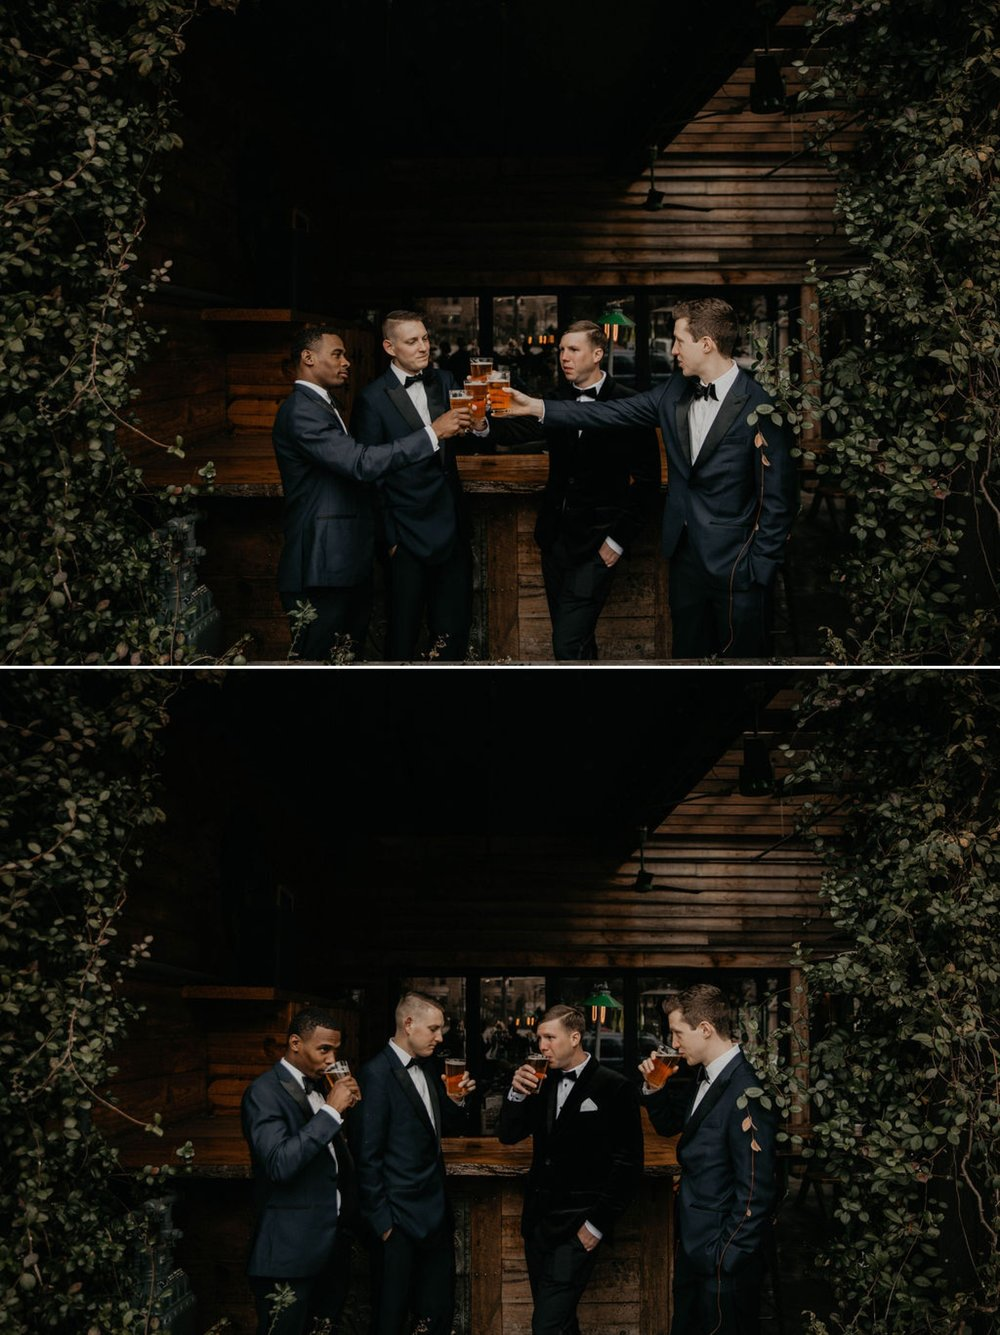 groom and groomsmen drinking beer and hanging out before the wedding at The raleigh beer garden - Matt Smarsh and Johanna Dye - suites by the black tux - Raleigh North Carolina Urban Edgy Downtown Wedding - suits by the black tux